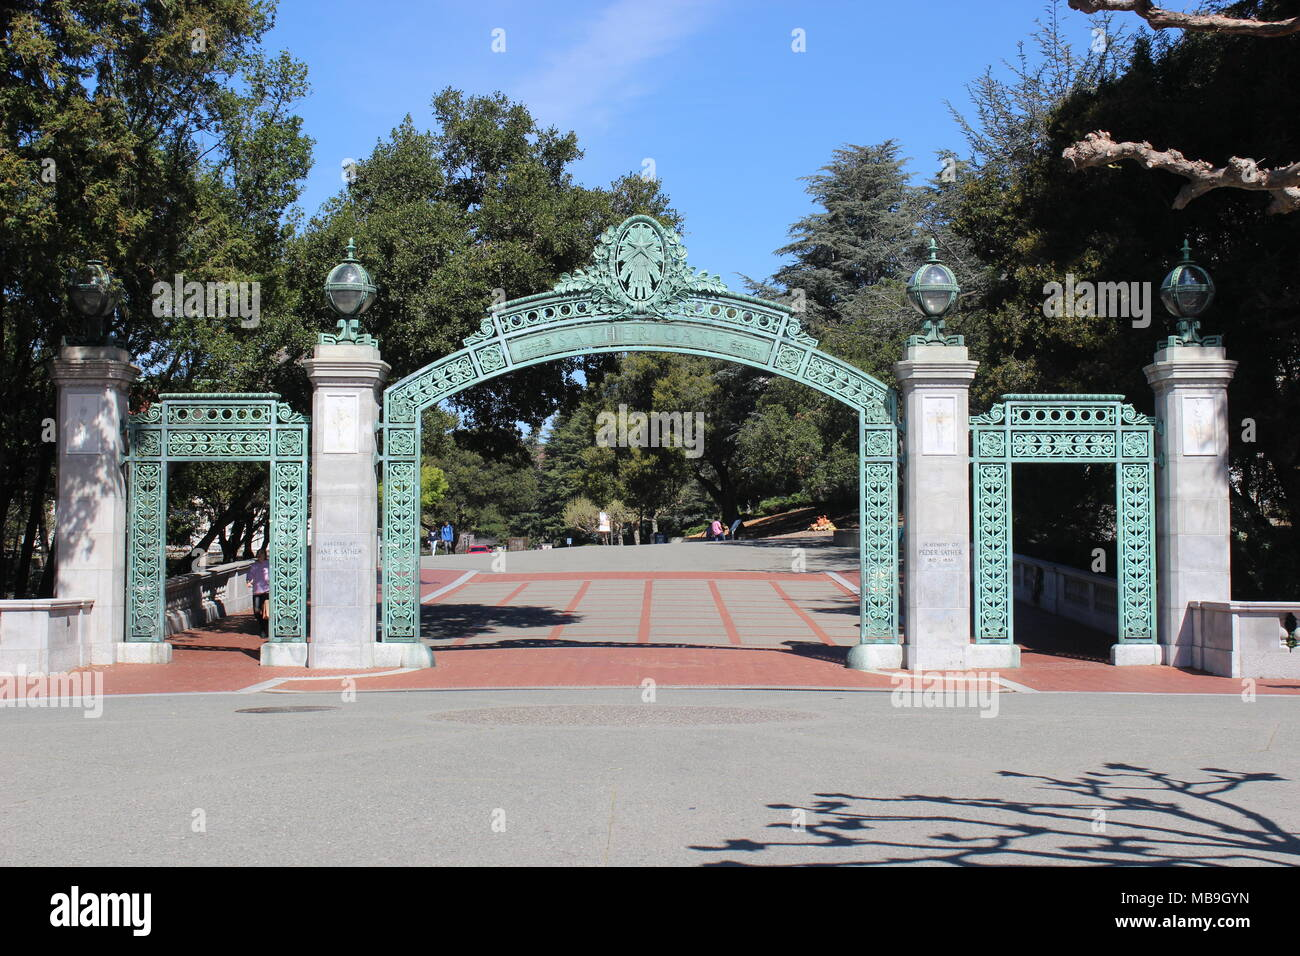 Sather Gate, University of California, Berkeley - Stock Image